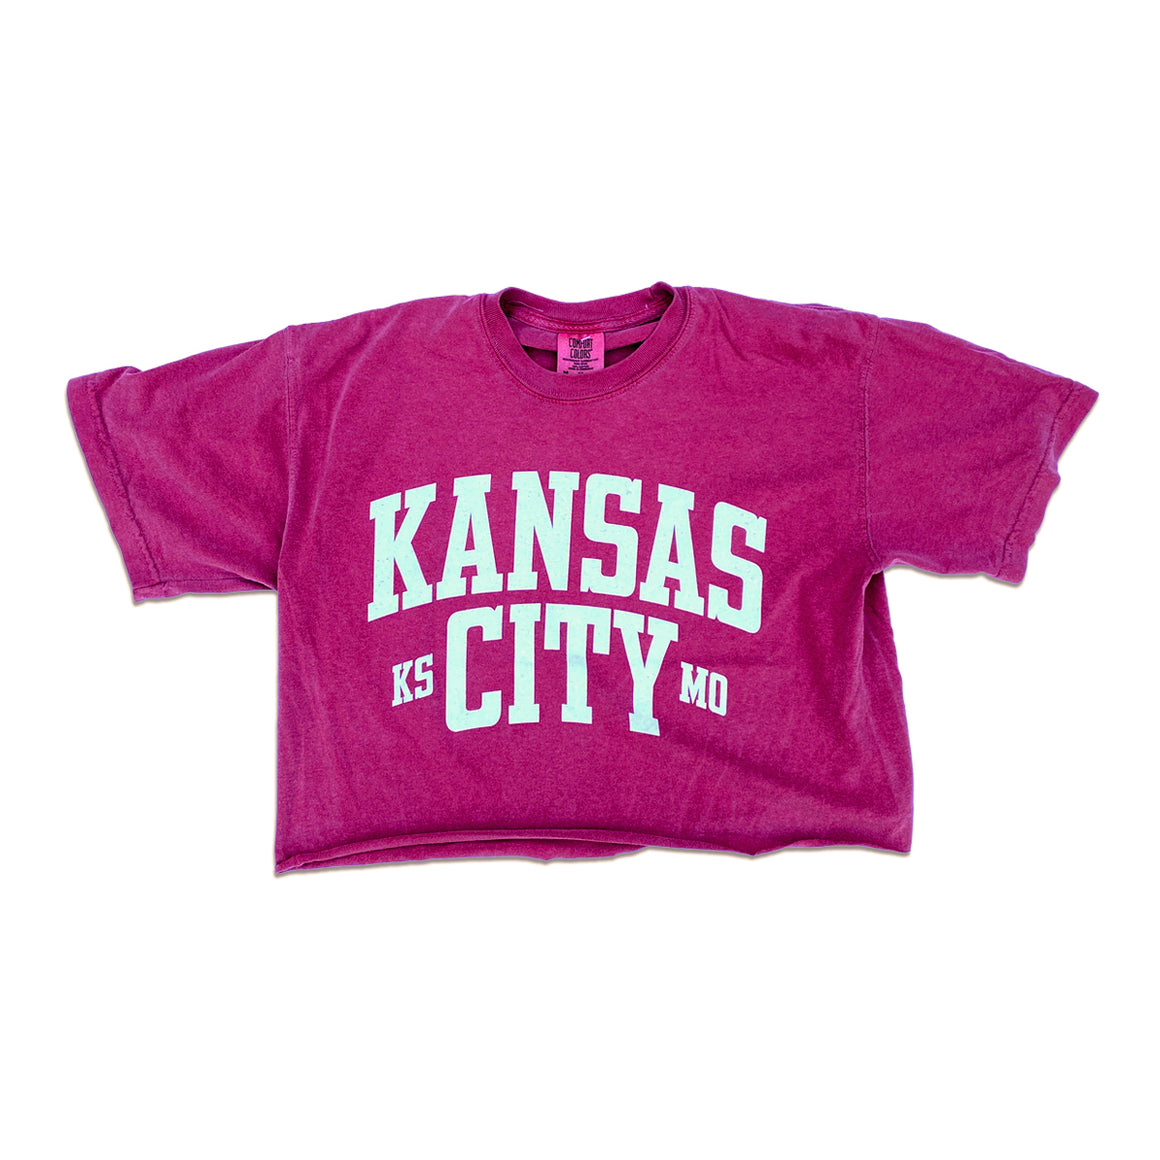 1KC | KCMO 2.0 CROP TOP - DUSTY ROSE